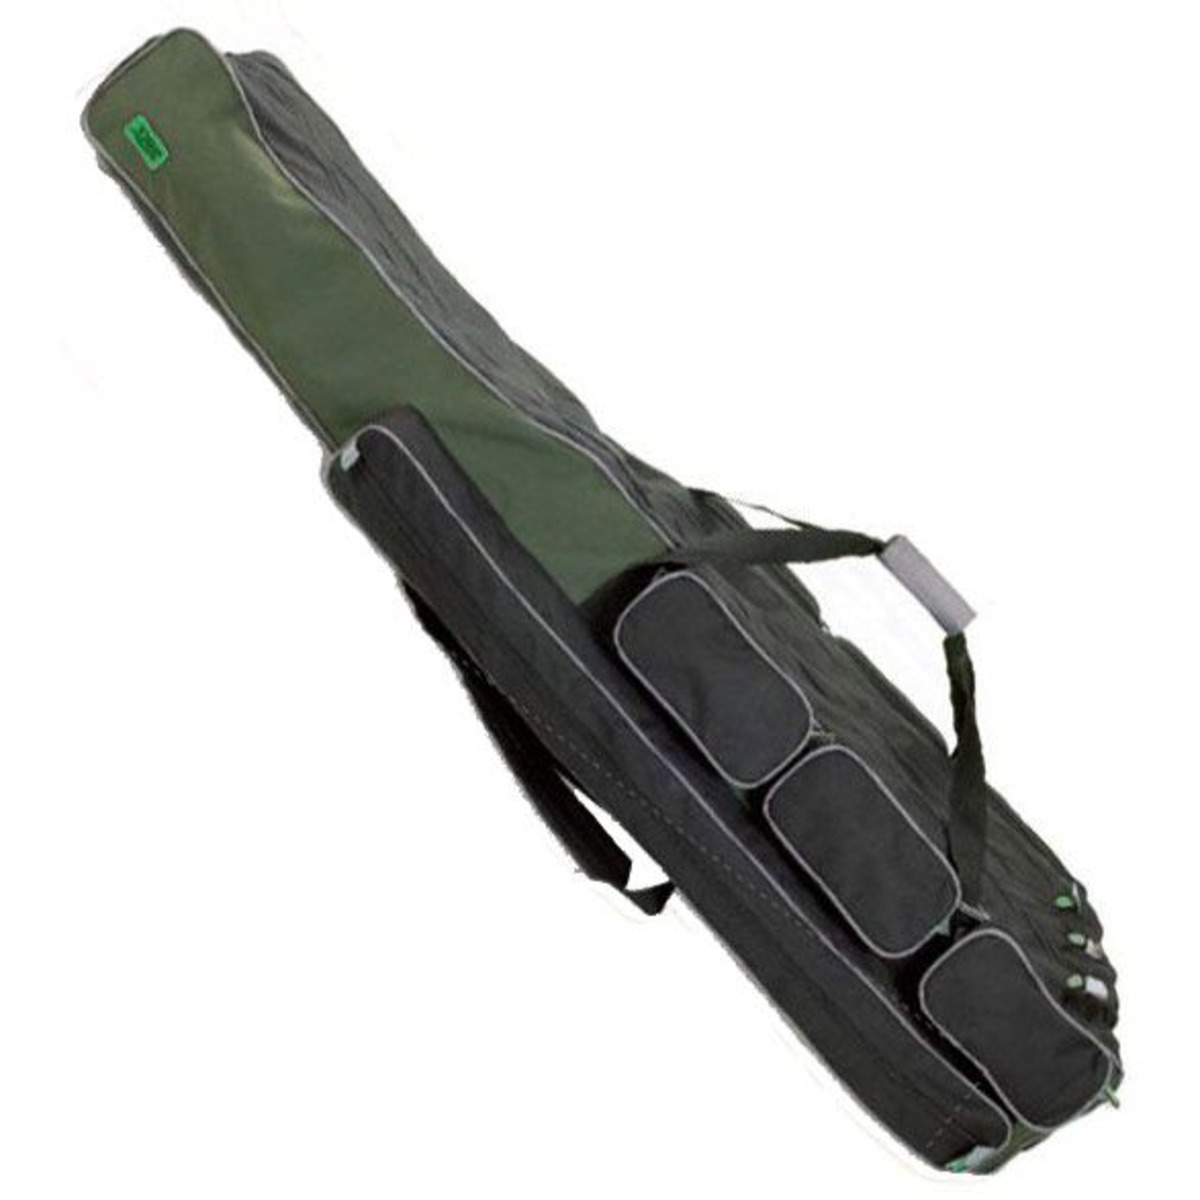 Zebco Universal Tackle Carrier - 135x40x20 cm